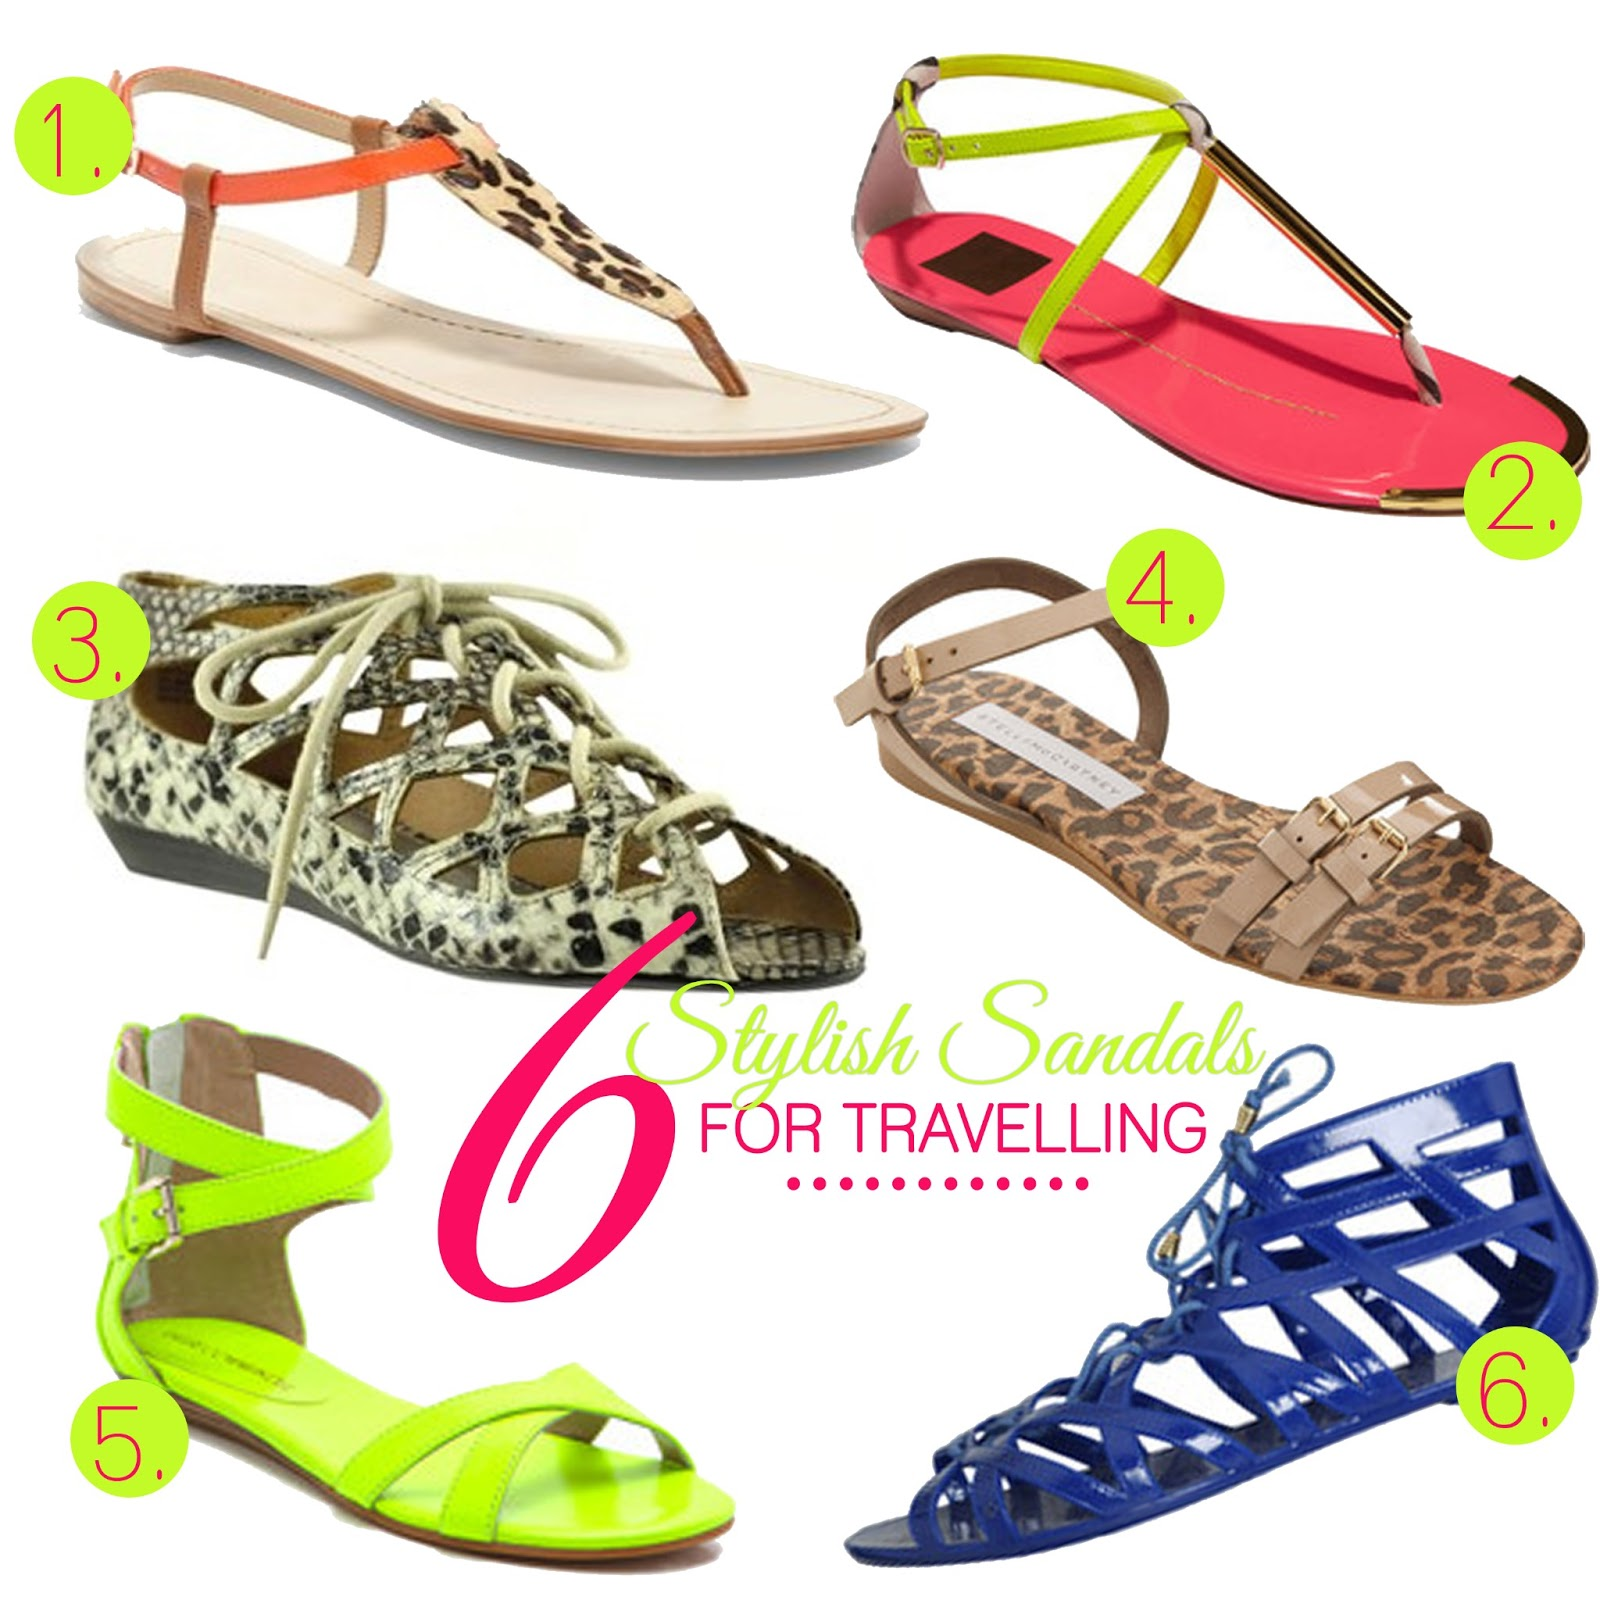 http://3.bp.blogspot.com/-sHQMQyKaDQU/UP68Q6AAYSI/AAAAAAAADeA/F70Yqn8FN4E/s1600/sandals-for-travelling.png